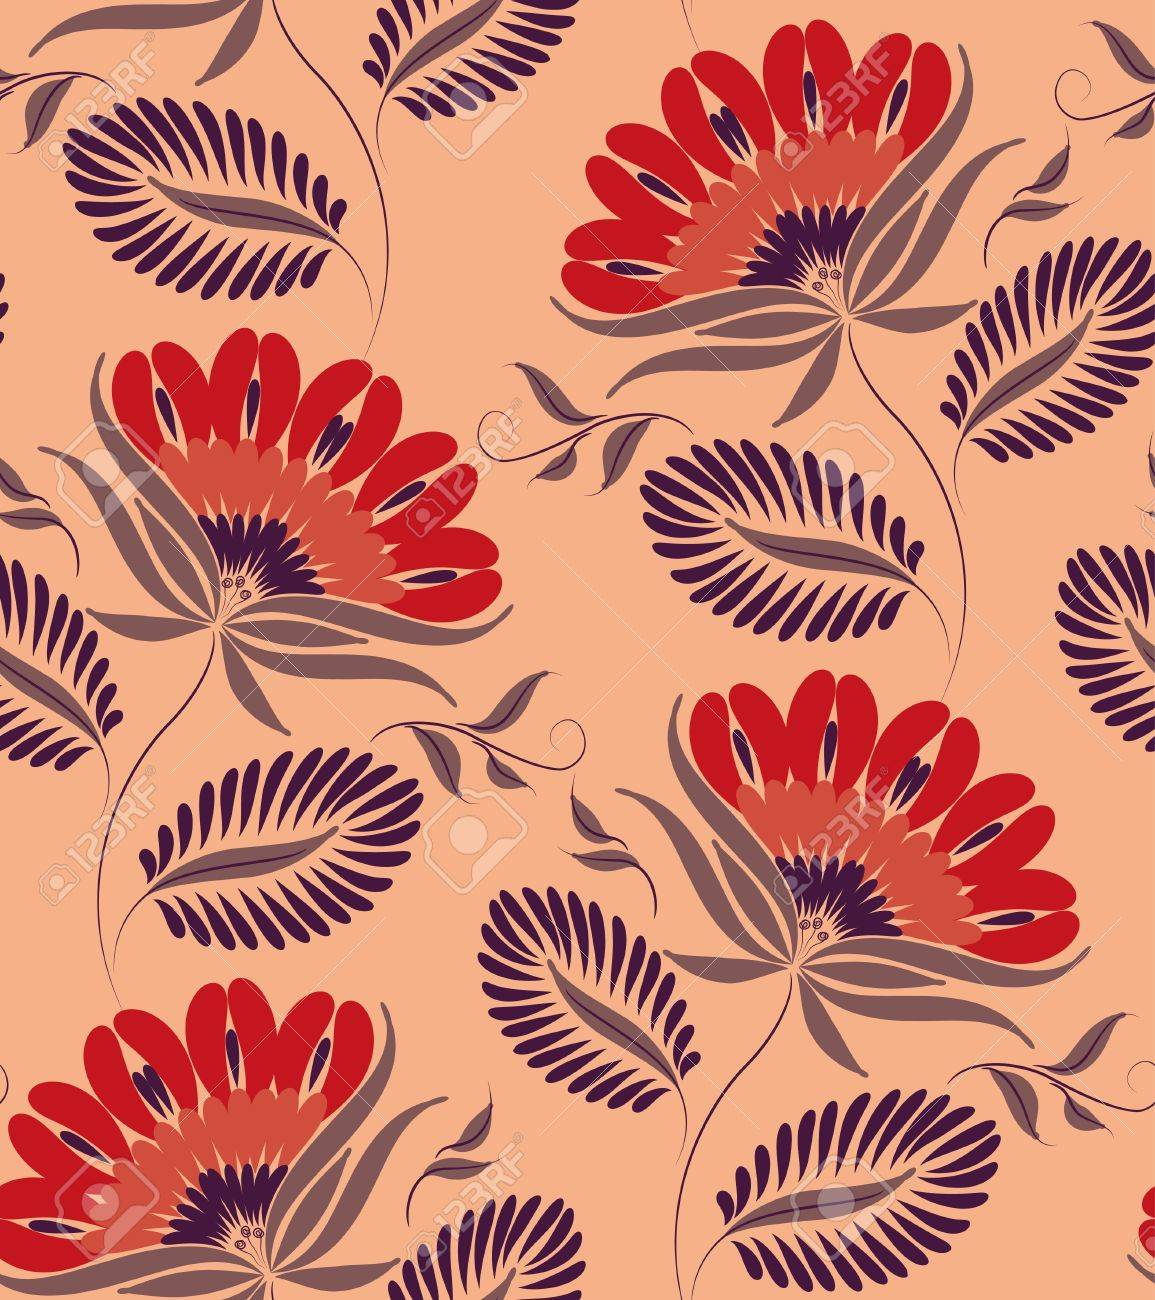 Flowers on a peach background. Floral design, in vintage style. Seamless pattern. Stock Vector - 10641246